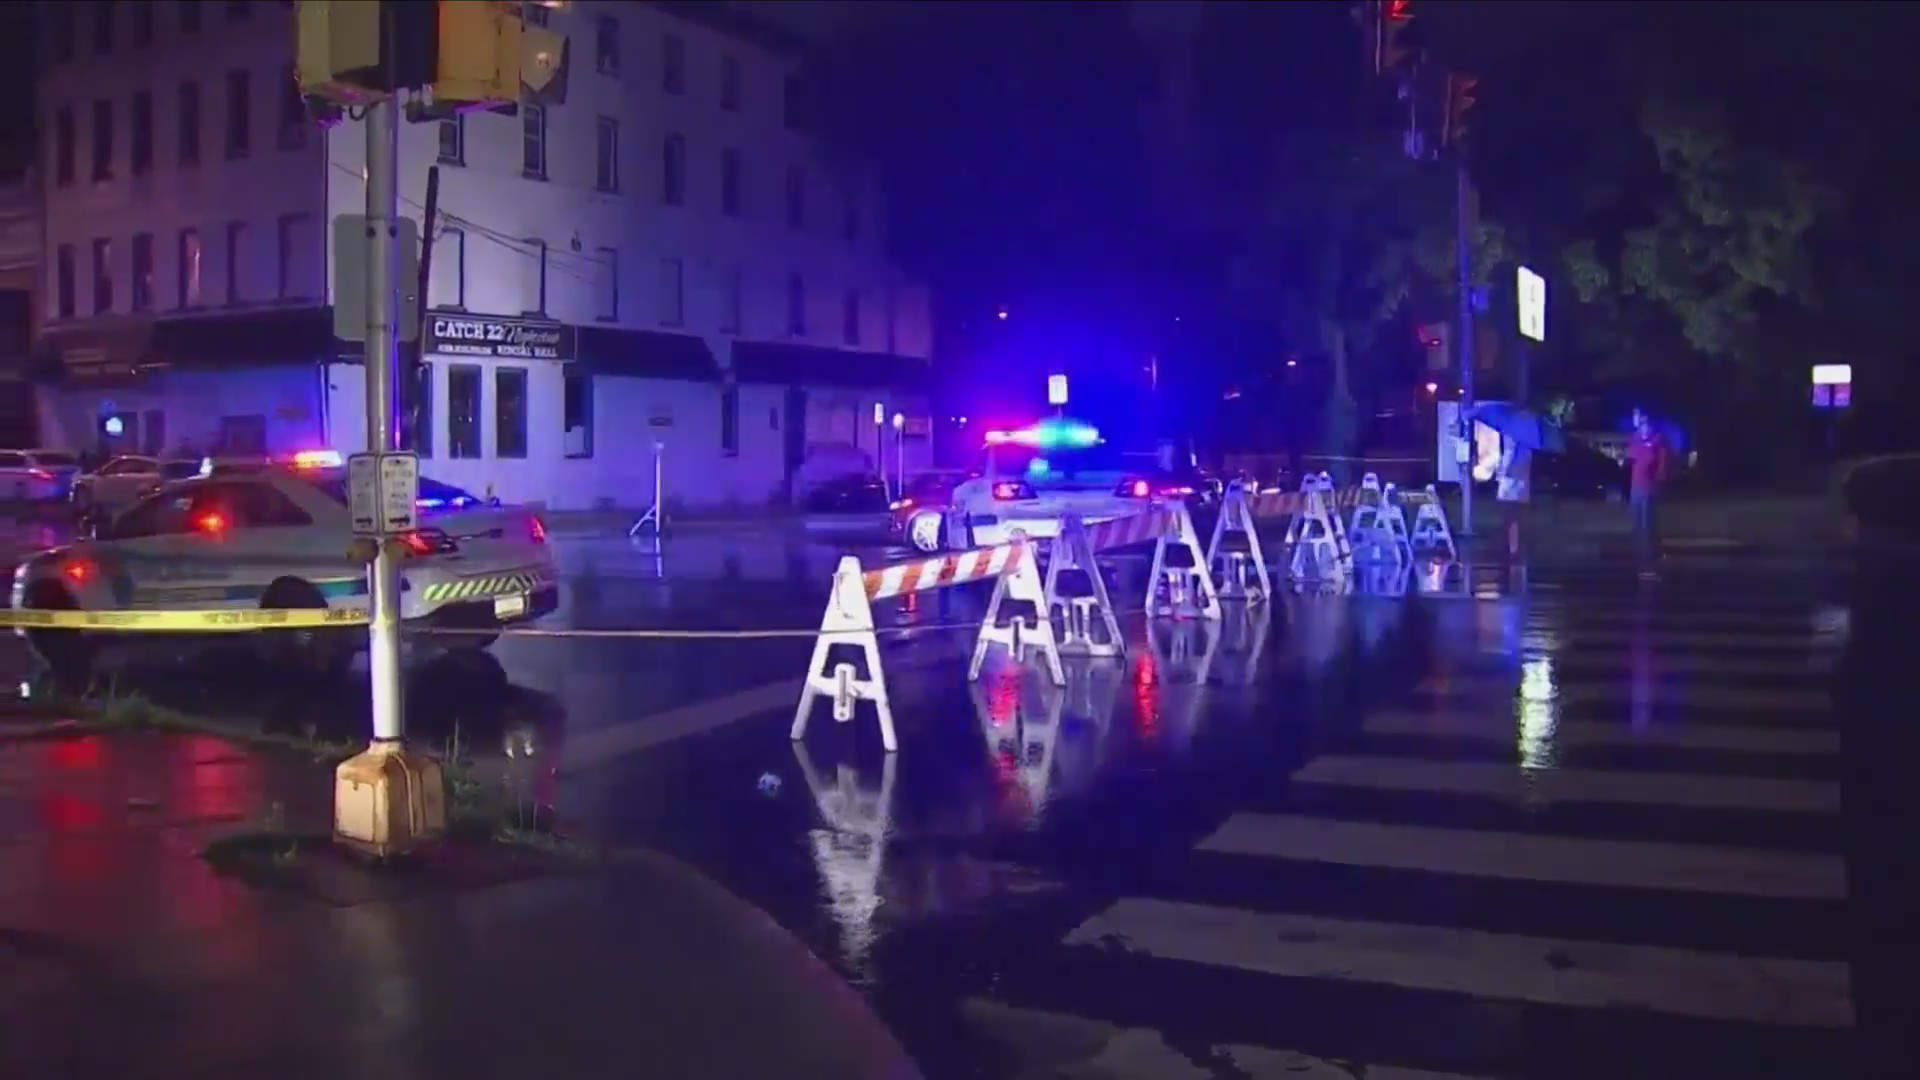 10 Wounded by multiple shooters outside of night club